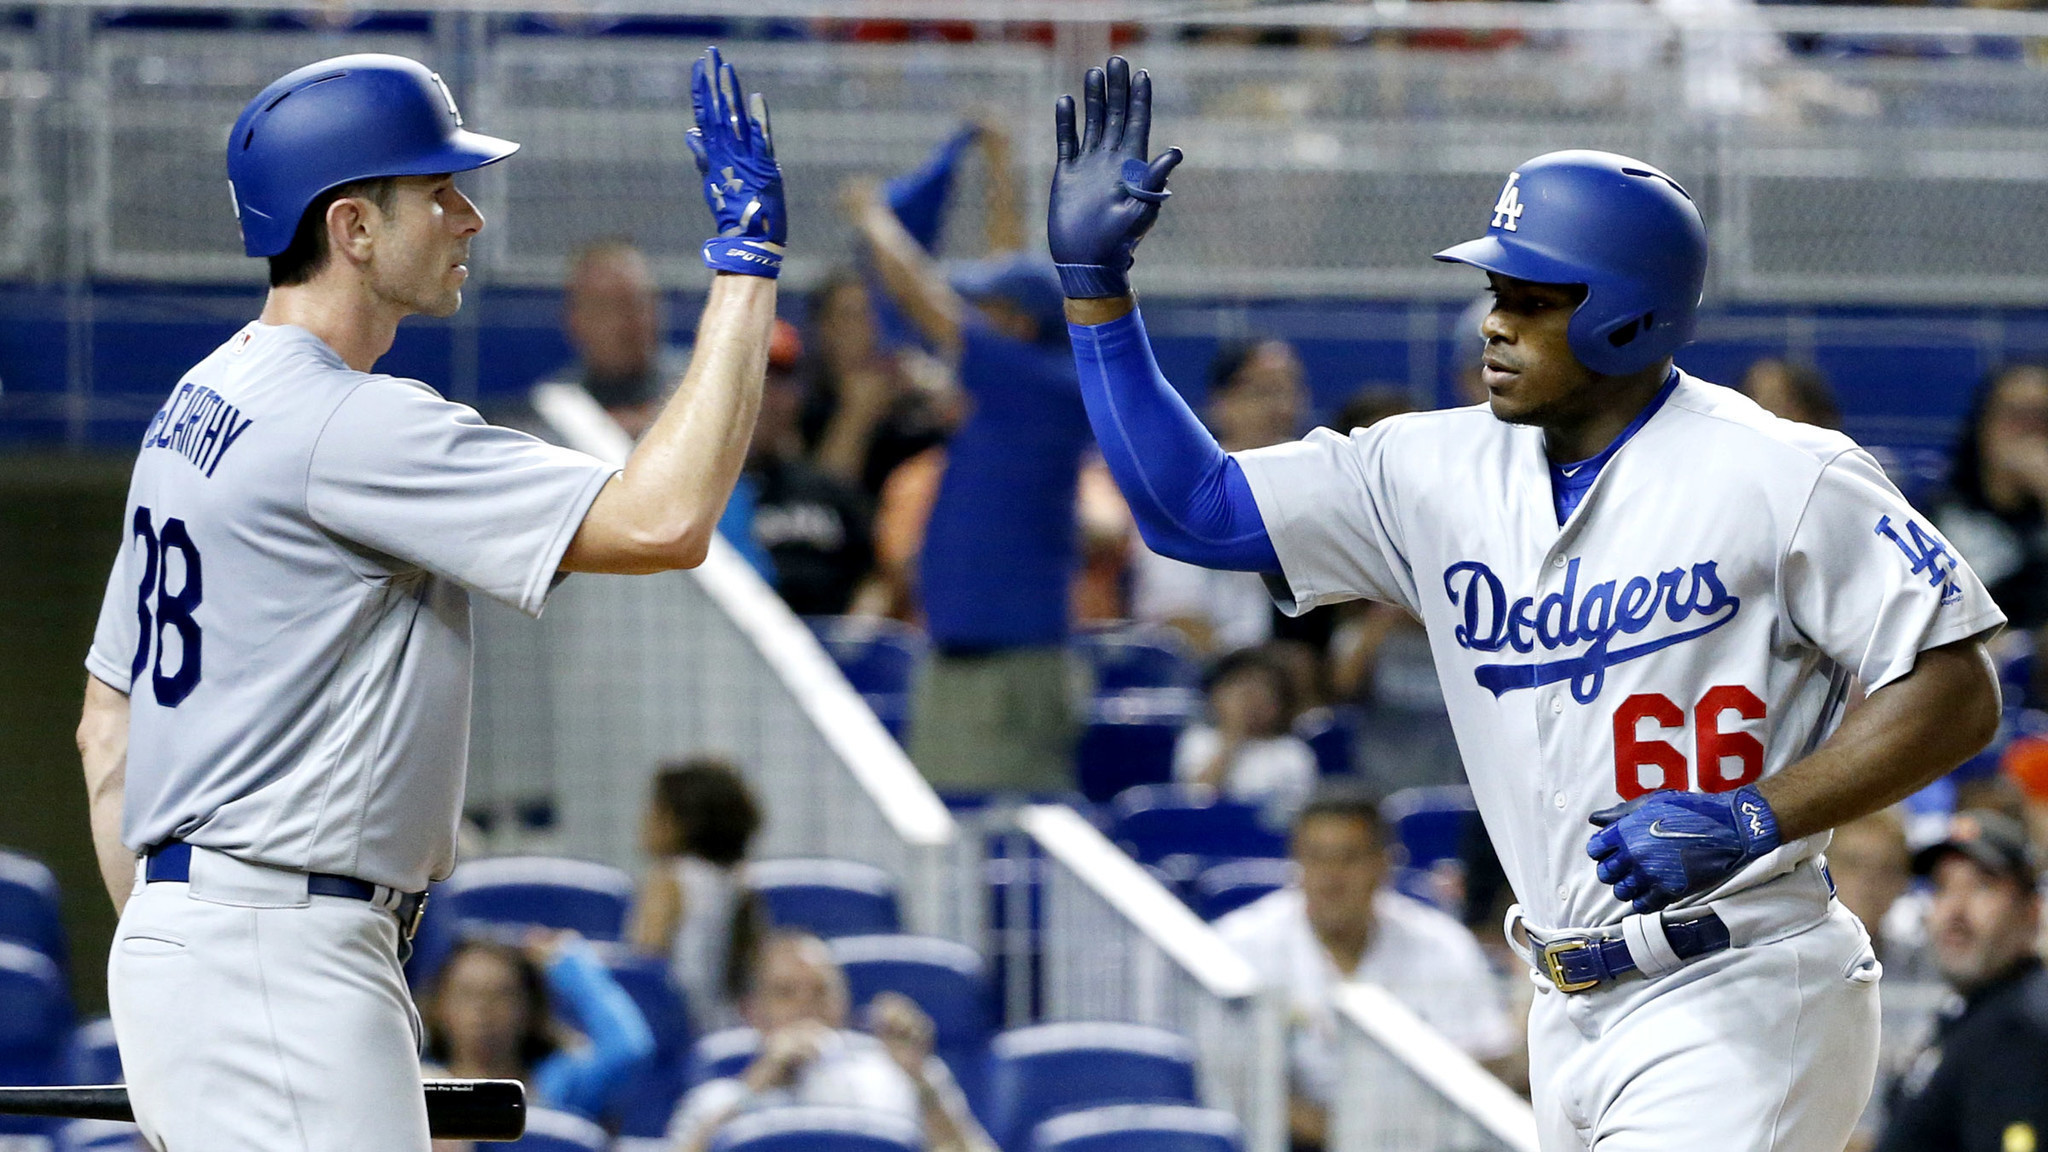 Yasiel Puig's two-out, ninth-inning home run lifts Dodgers ...